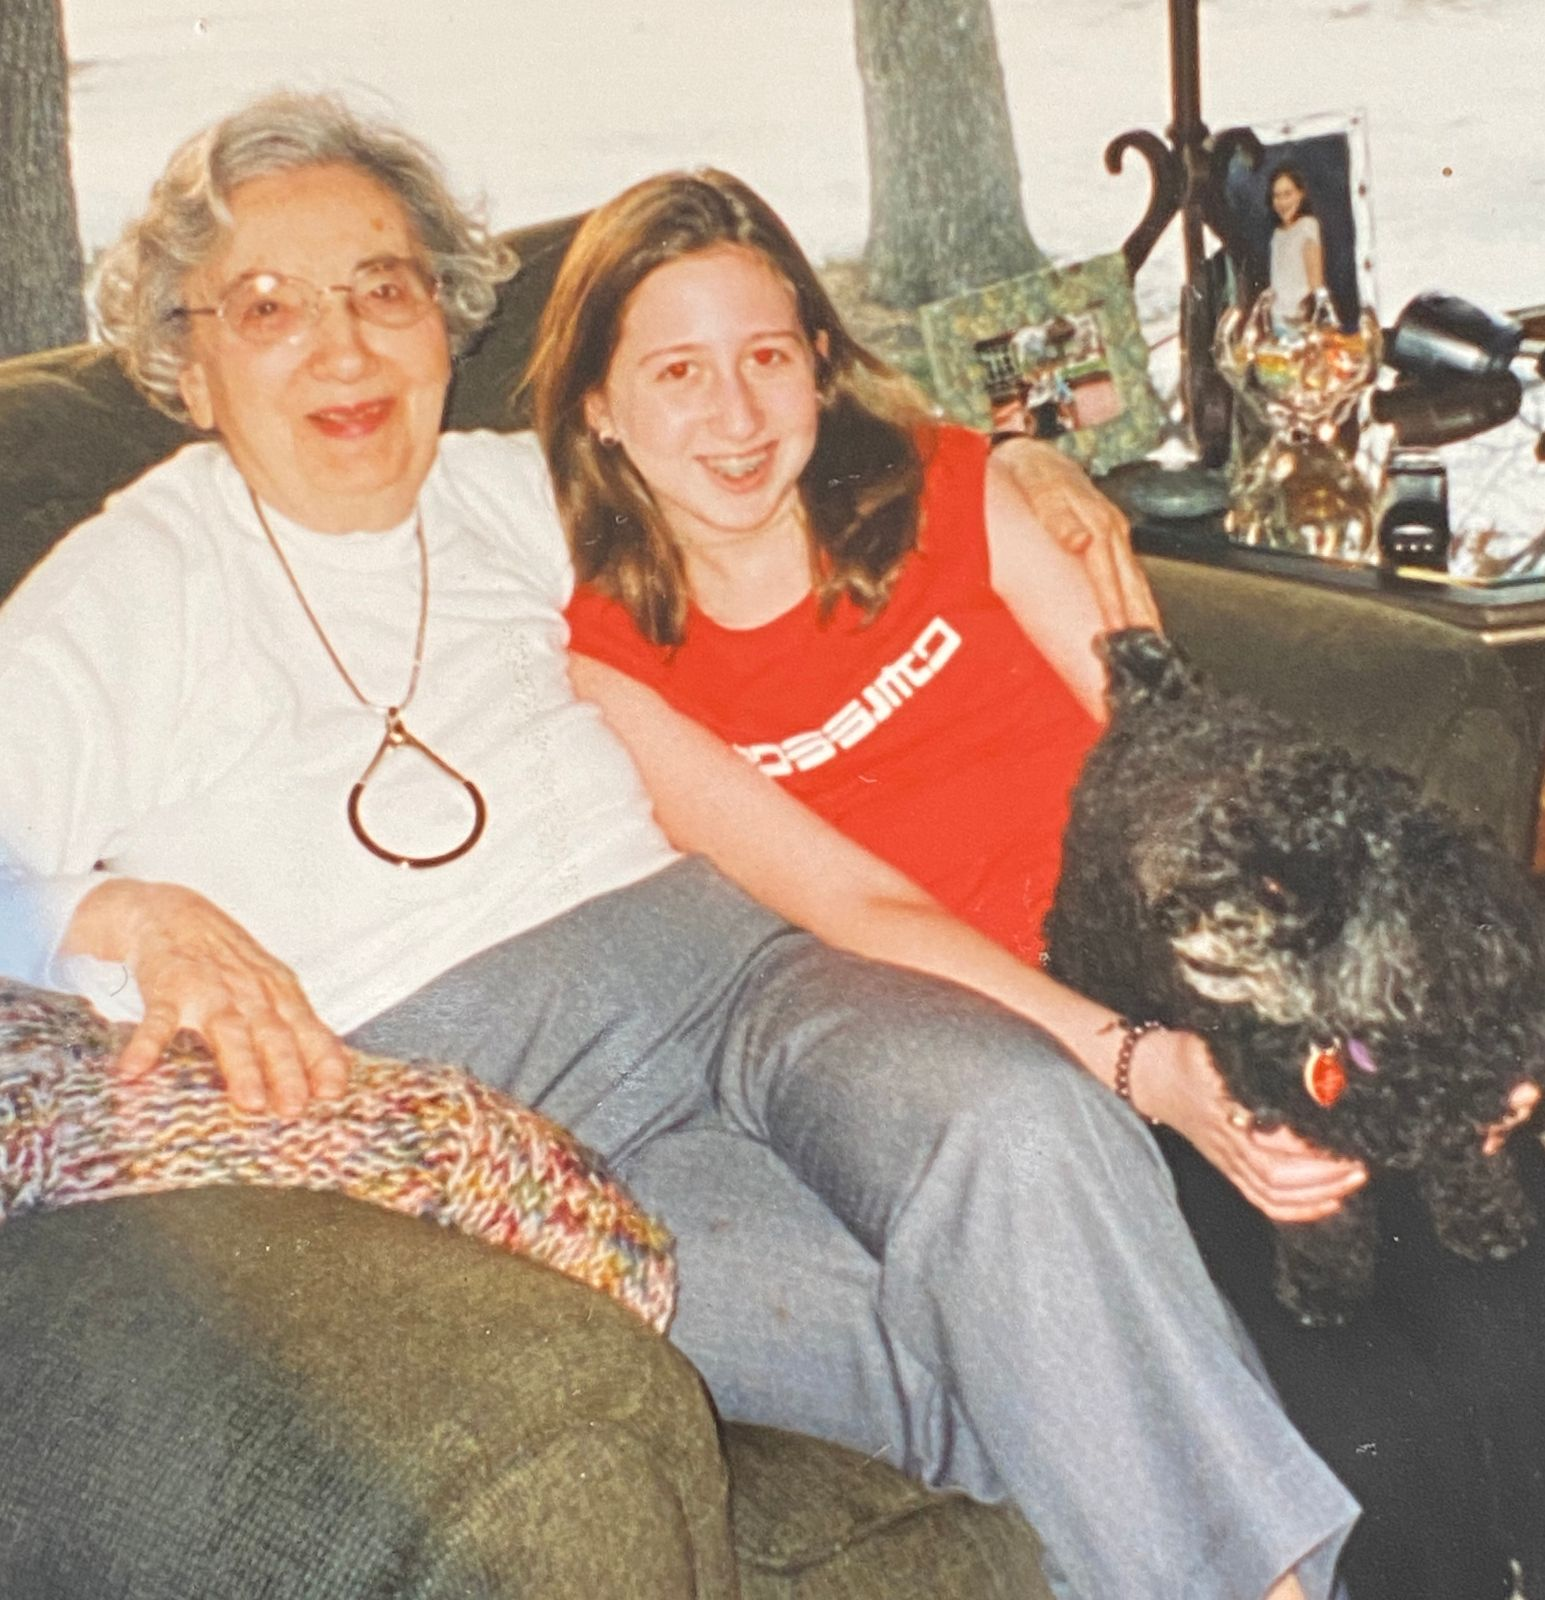 bby with her grandmother and her dog Bailey, 2001. A pet can take some of the focus off an only child.